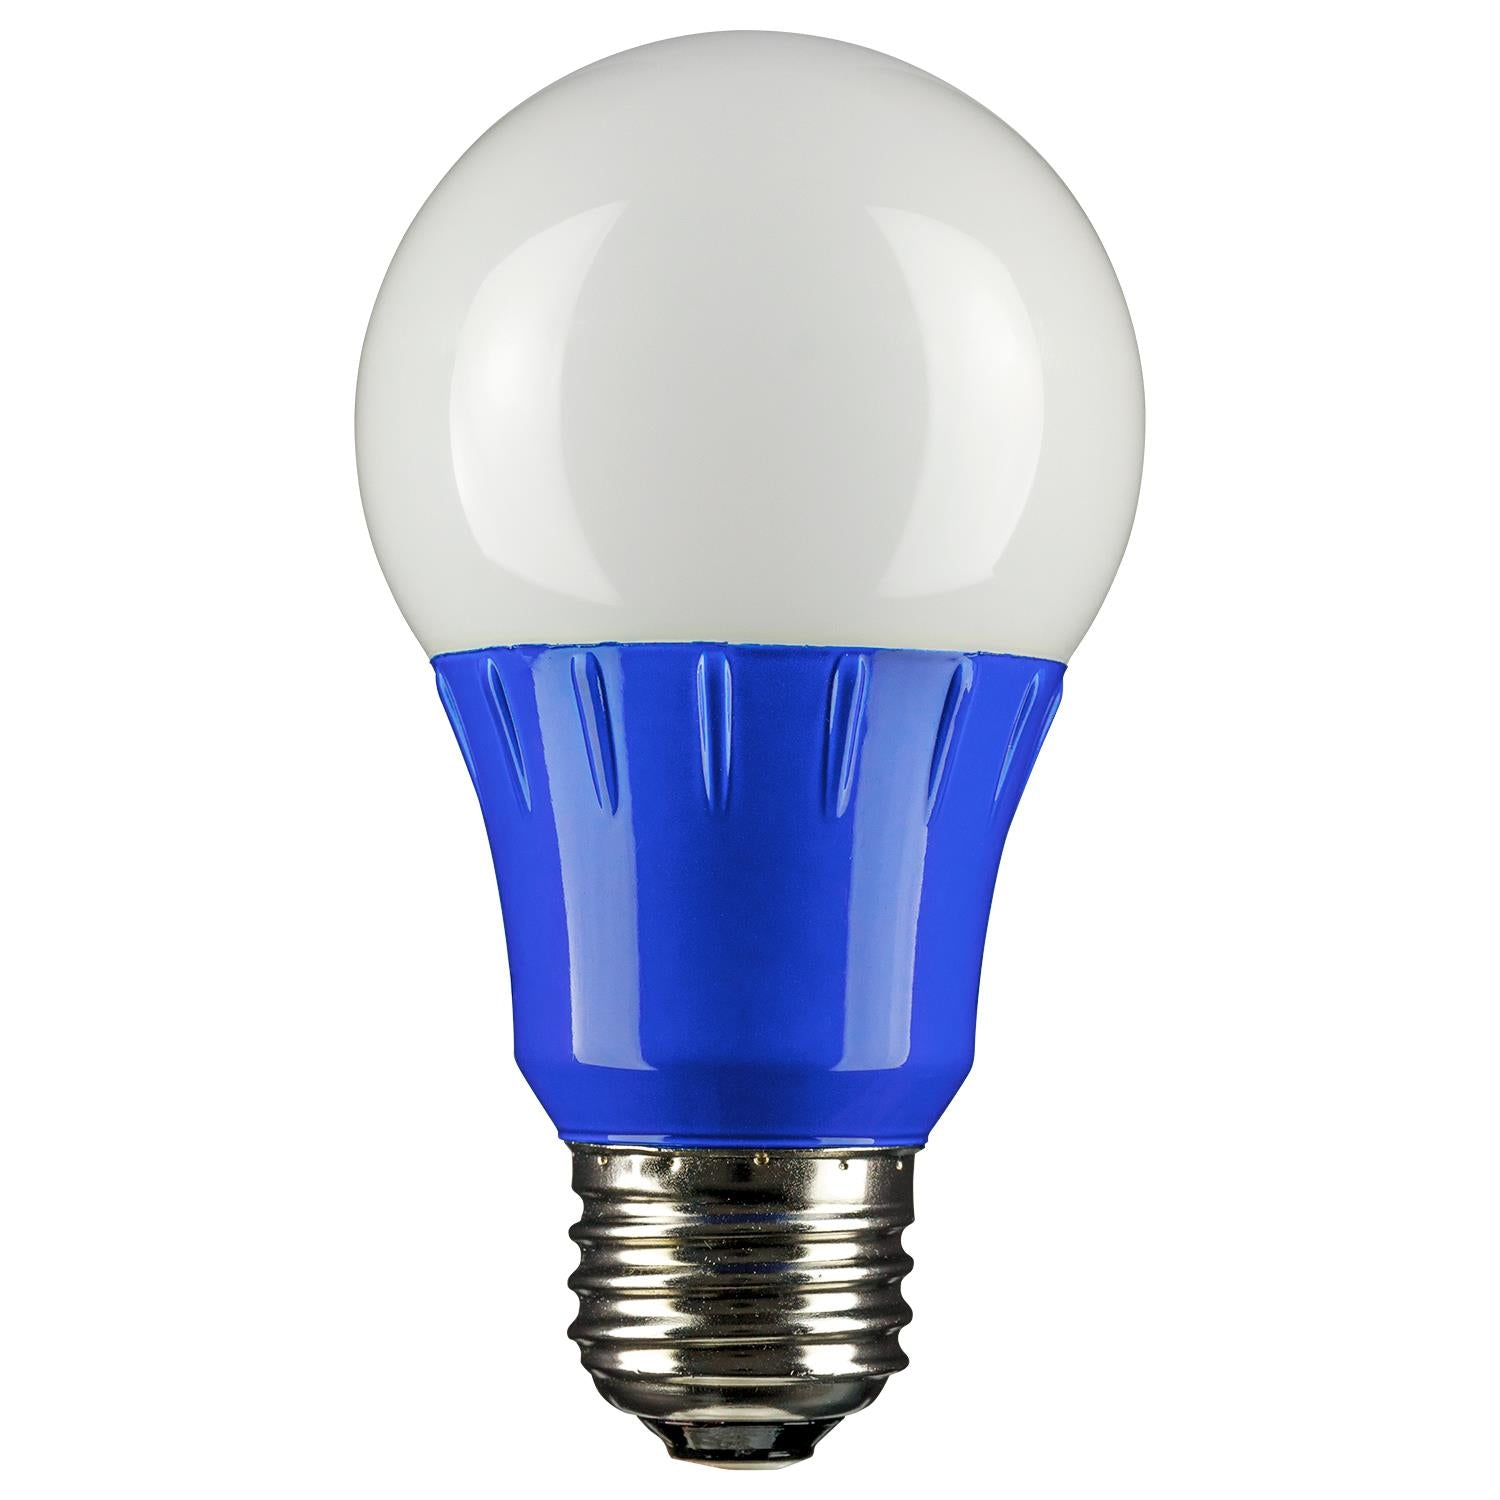 SUNLITE Blue A19 LED 3w Medium (E26) Base Light Bulb - 80145-SU